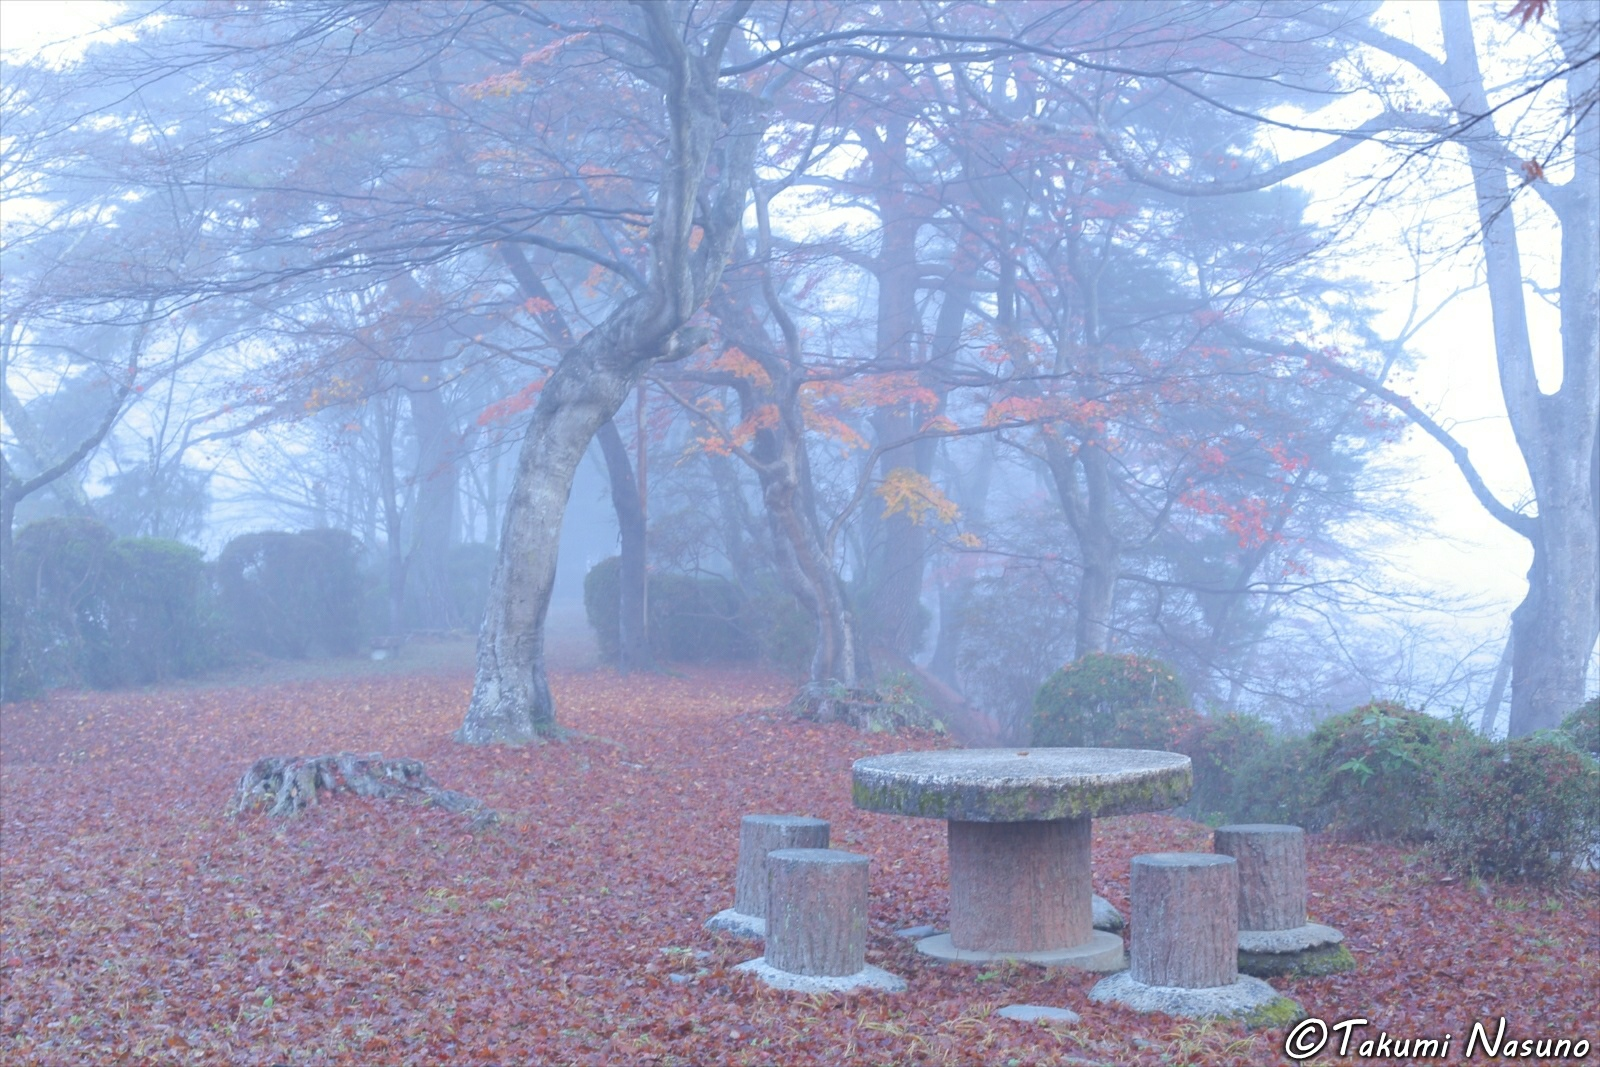 Site of Tanagura Castle with Autumn Colors in the Mist